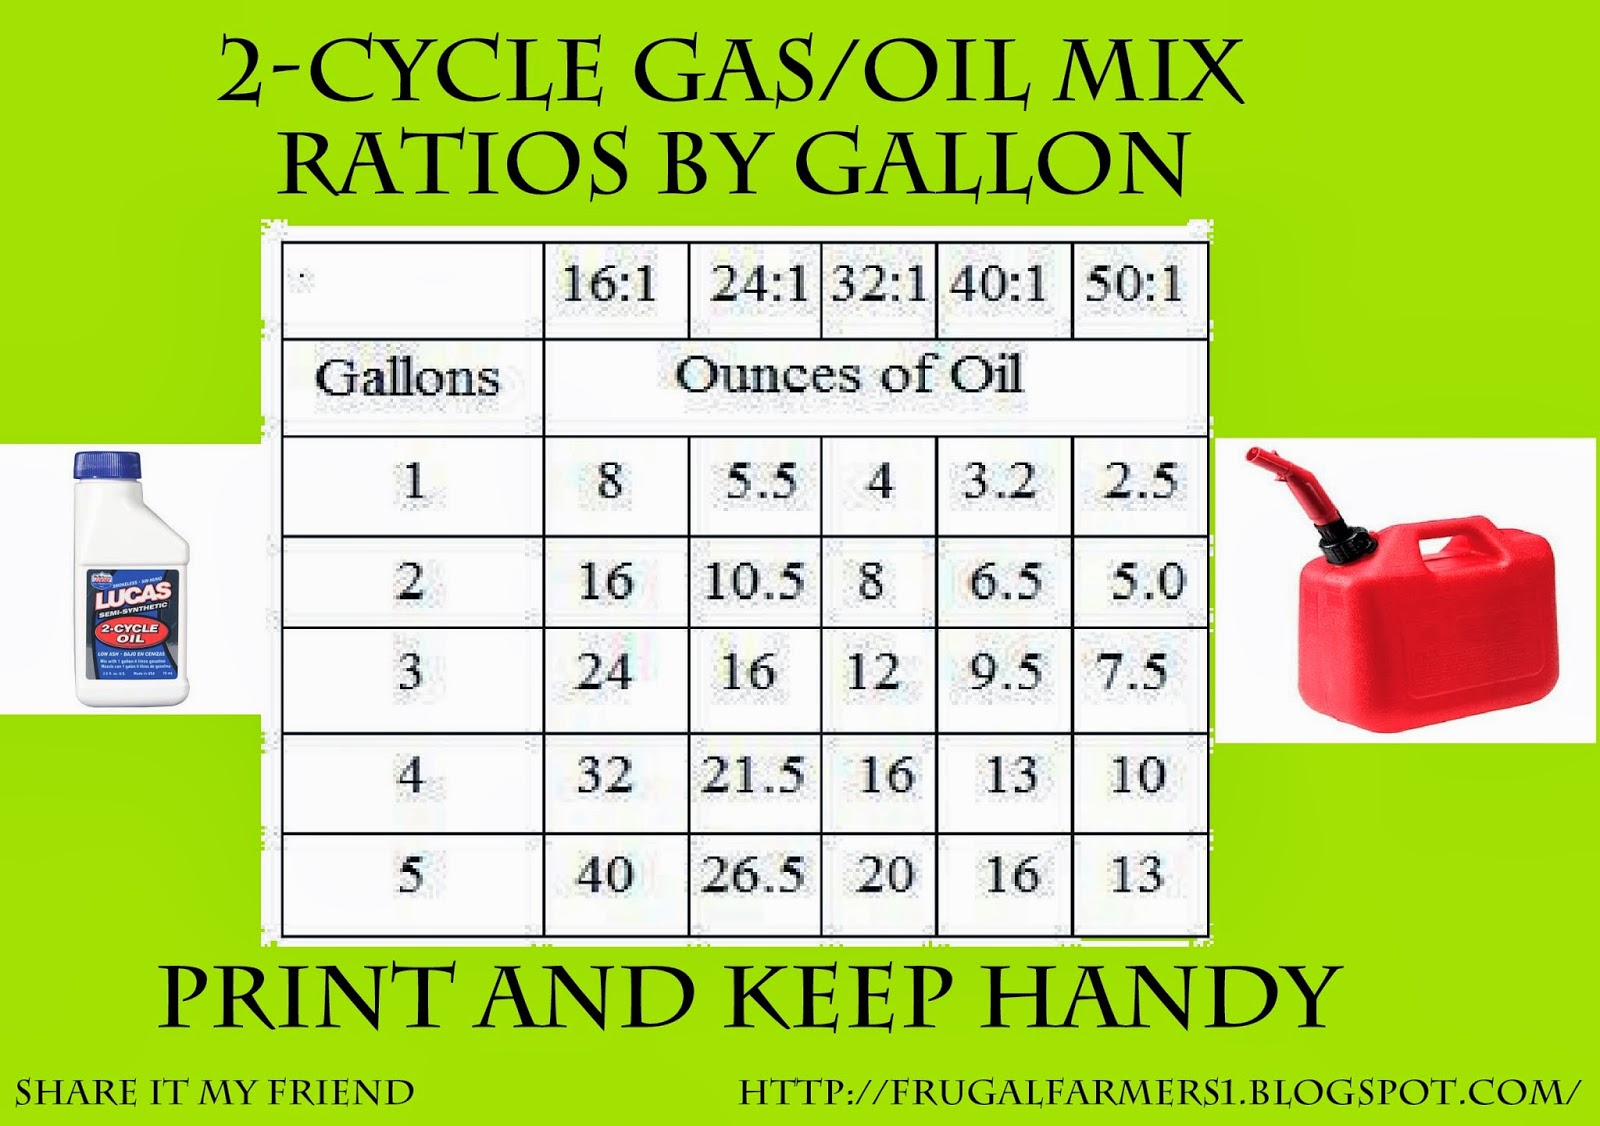 2 stroke mix ratio chart: The frugal farmer s network 2 cycle gas oil mix ratios